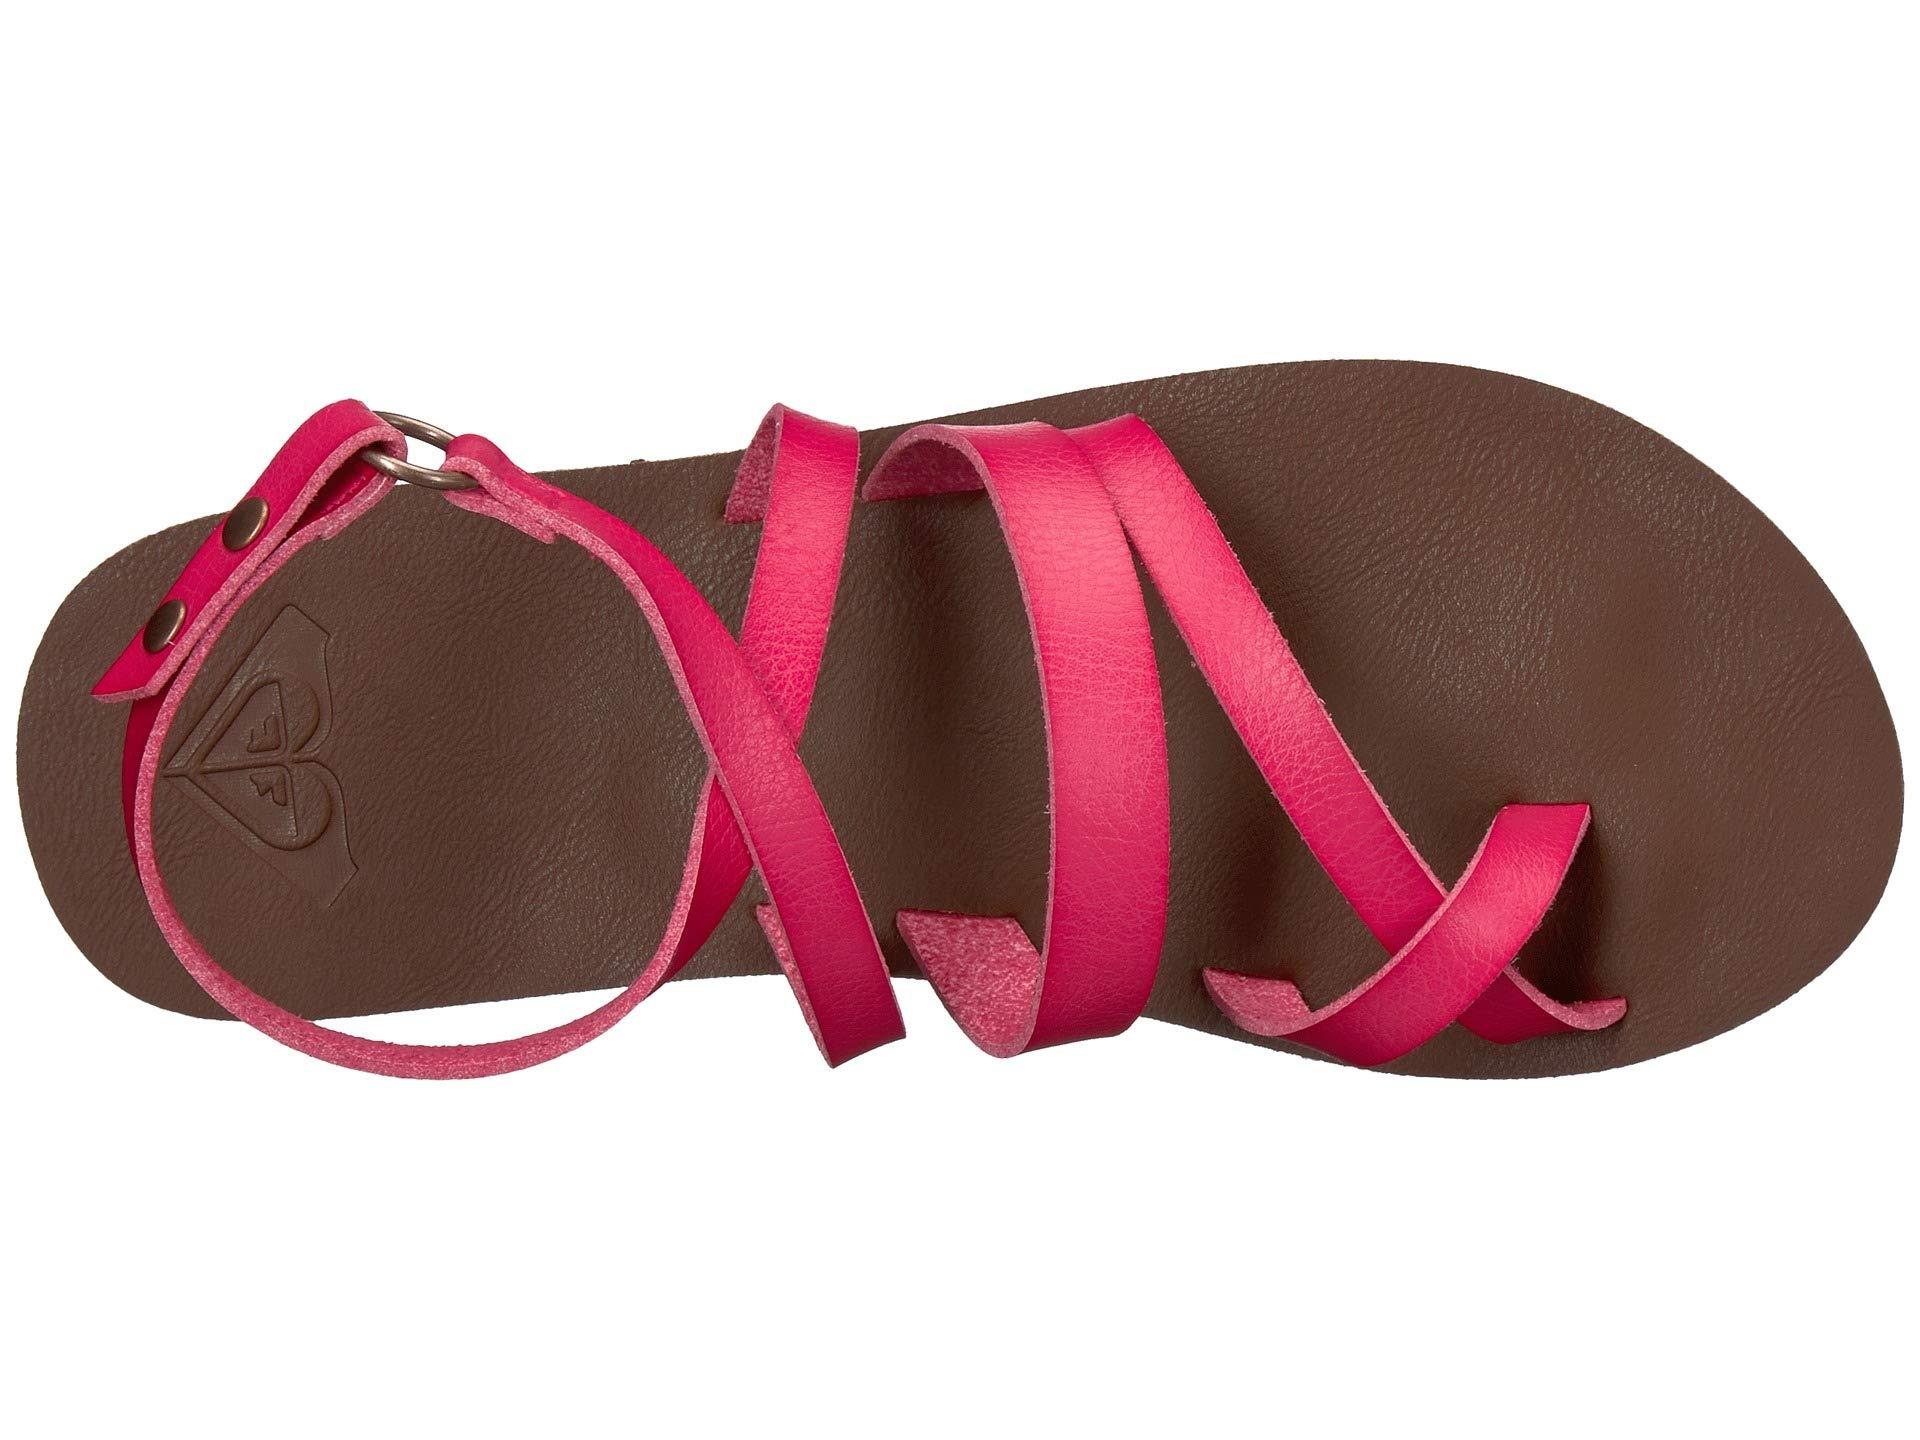 c76256506baa Roxy - Pink Rachelle (black) Women s Sandals - Lyst. View fullscreen